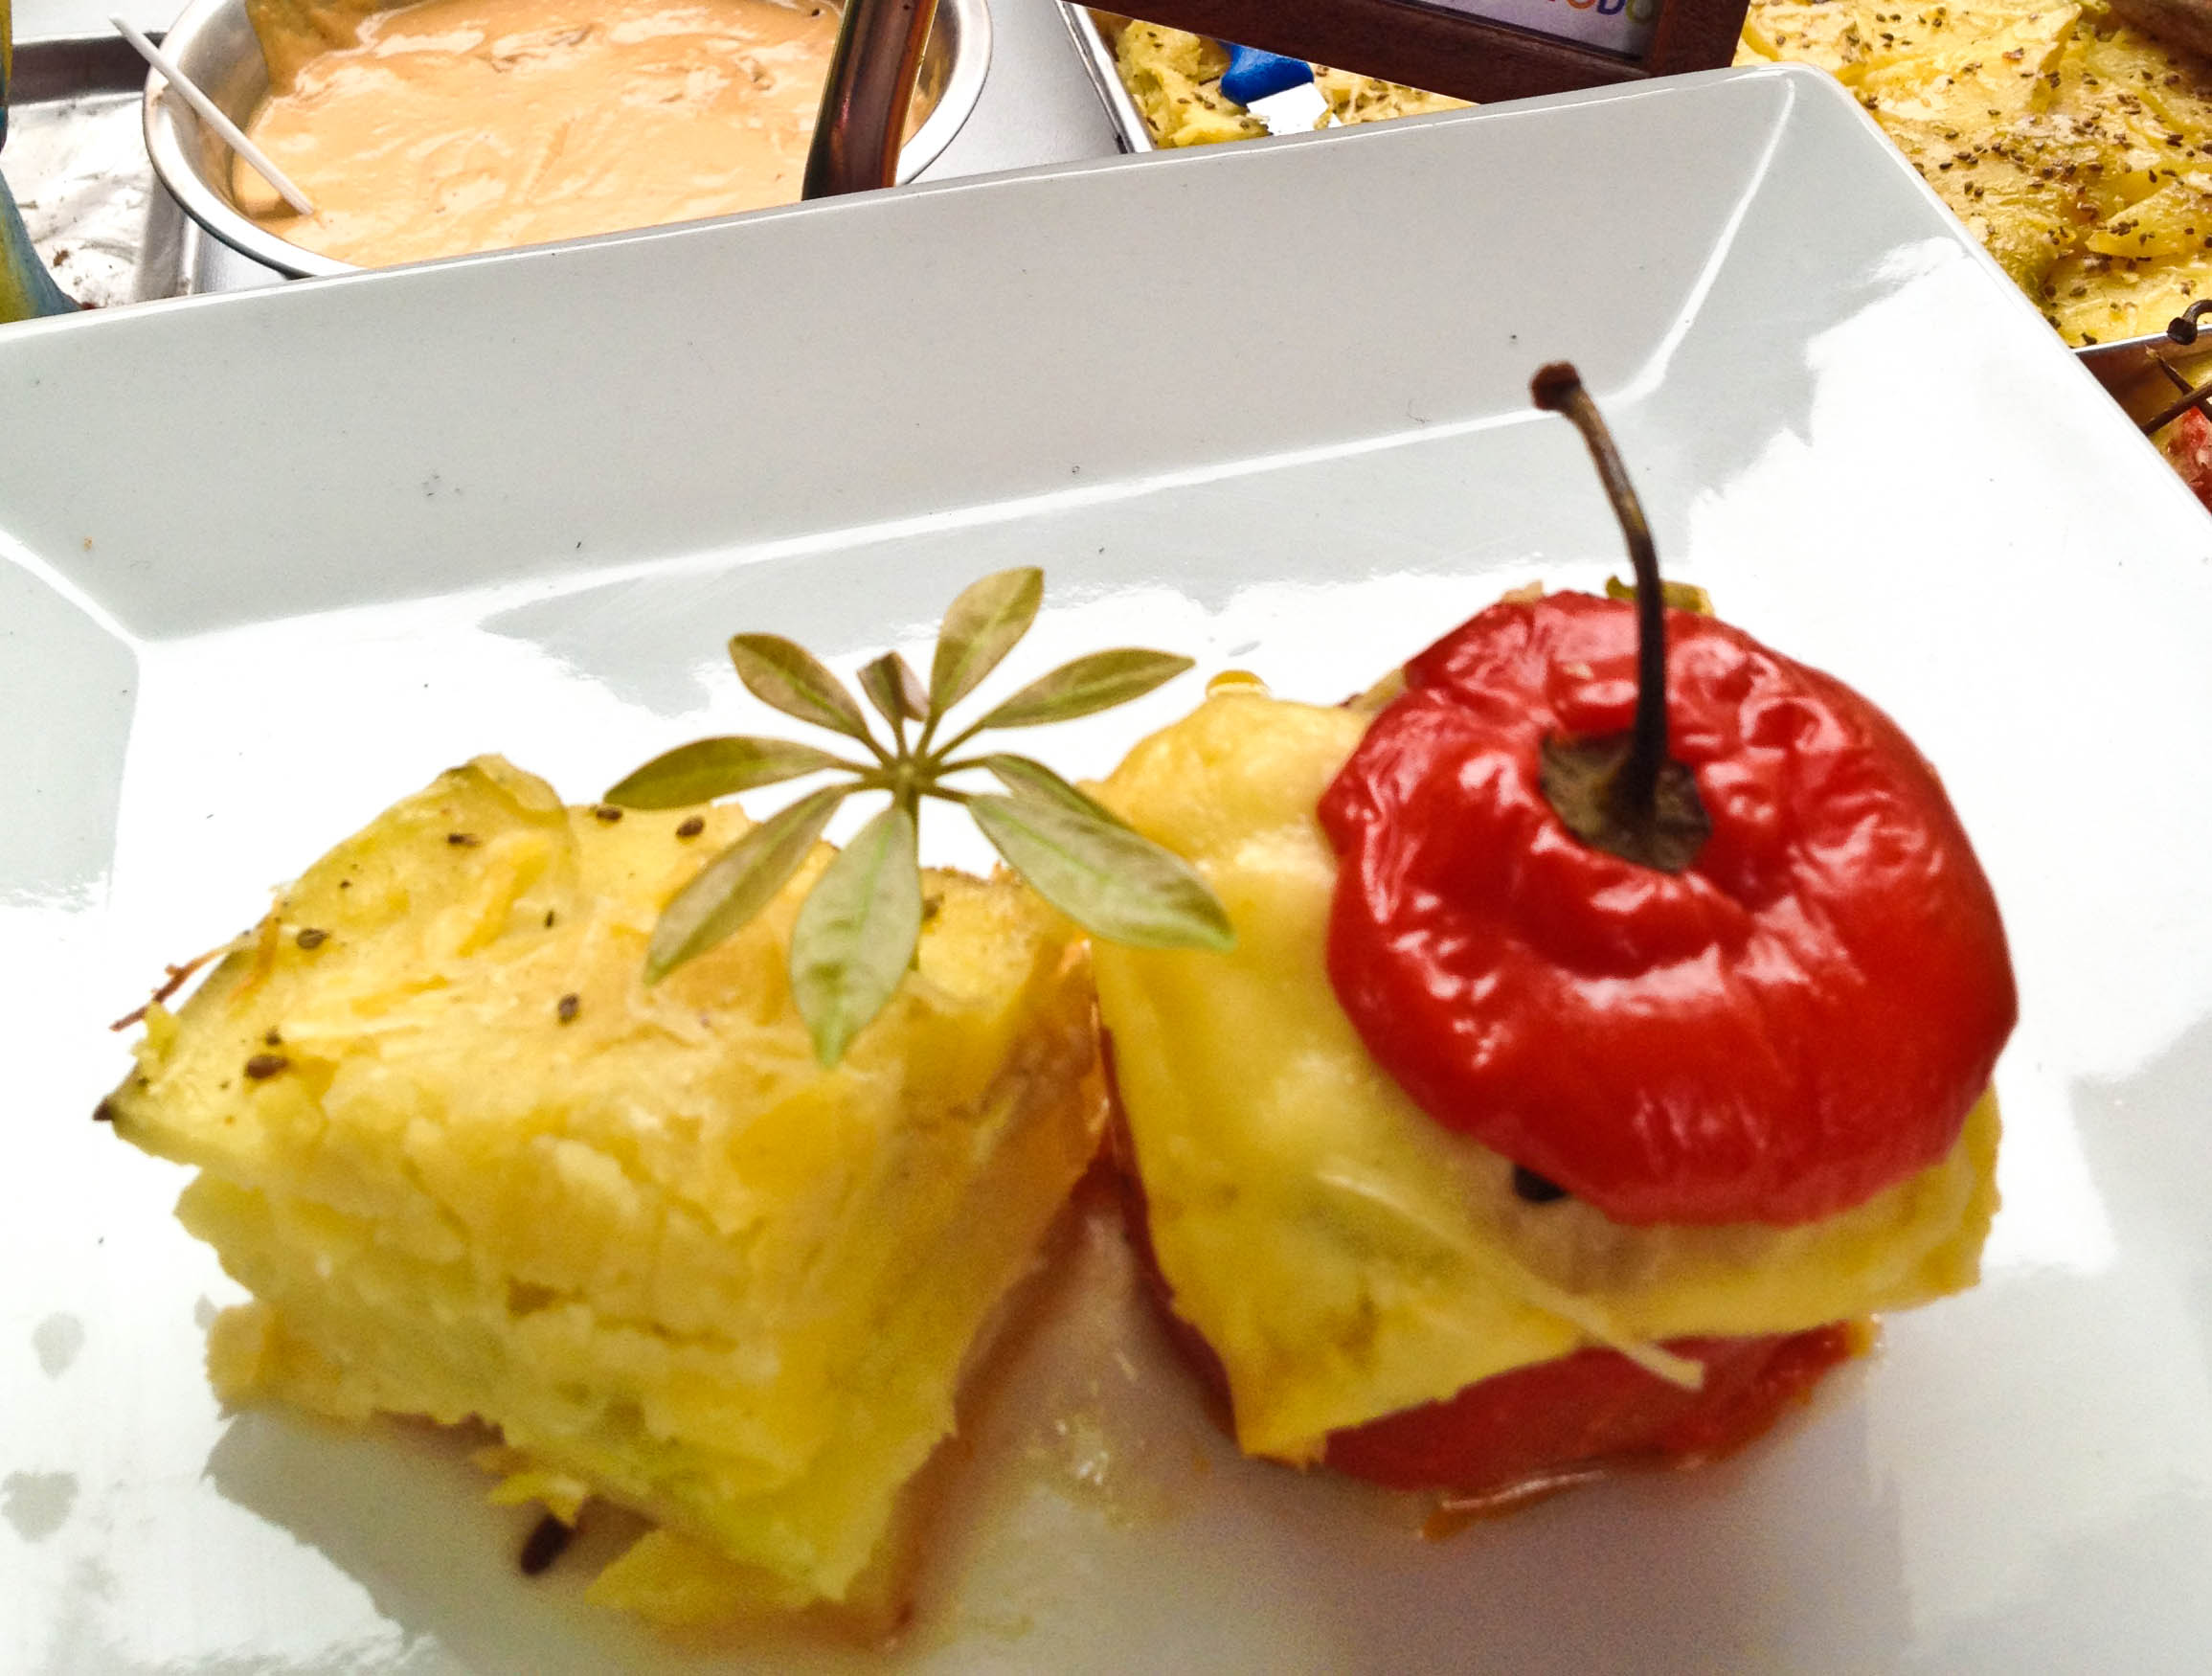 Rocoto Relleno: mildy spicy pepper stuffed with meat and cheese and a side of baked layered potatoes.